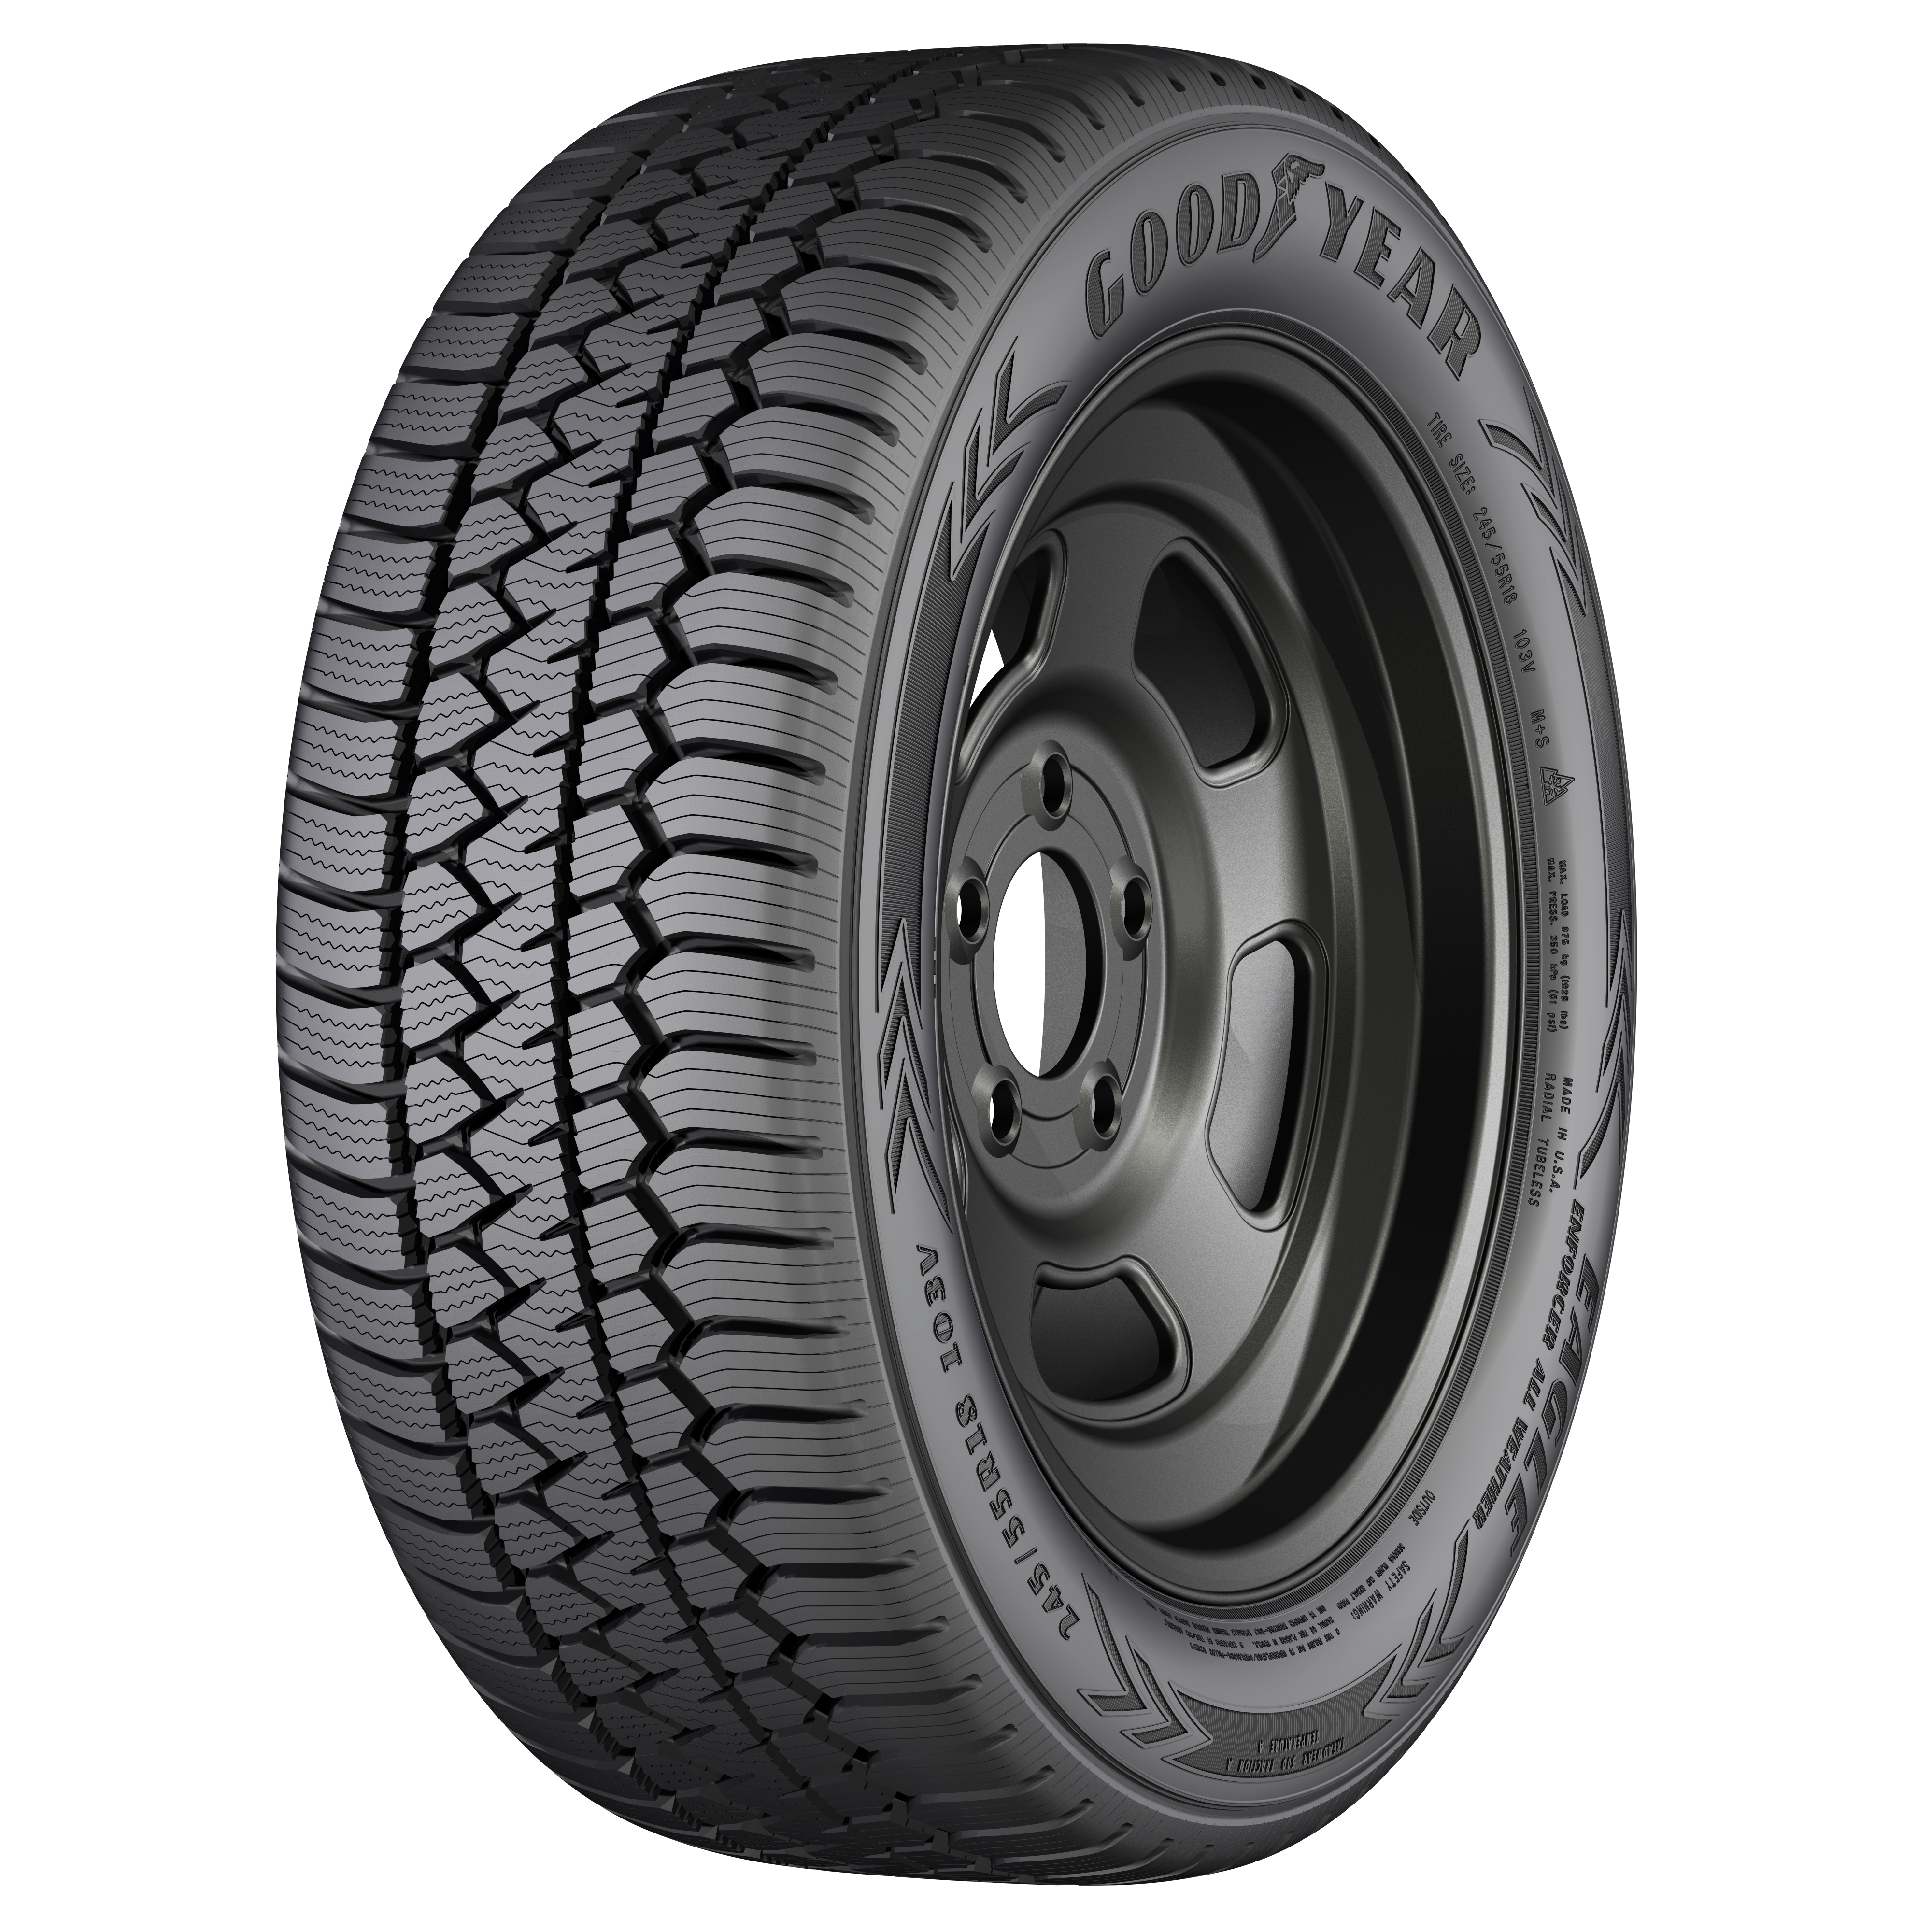 Goodyear Launches New Tech Tires At 2018 Customer Conference